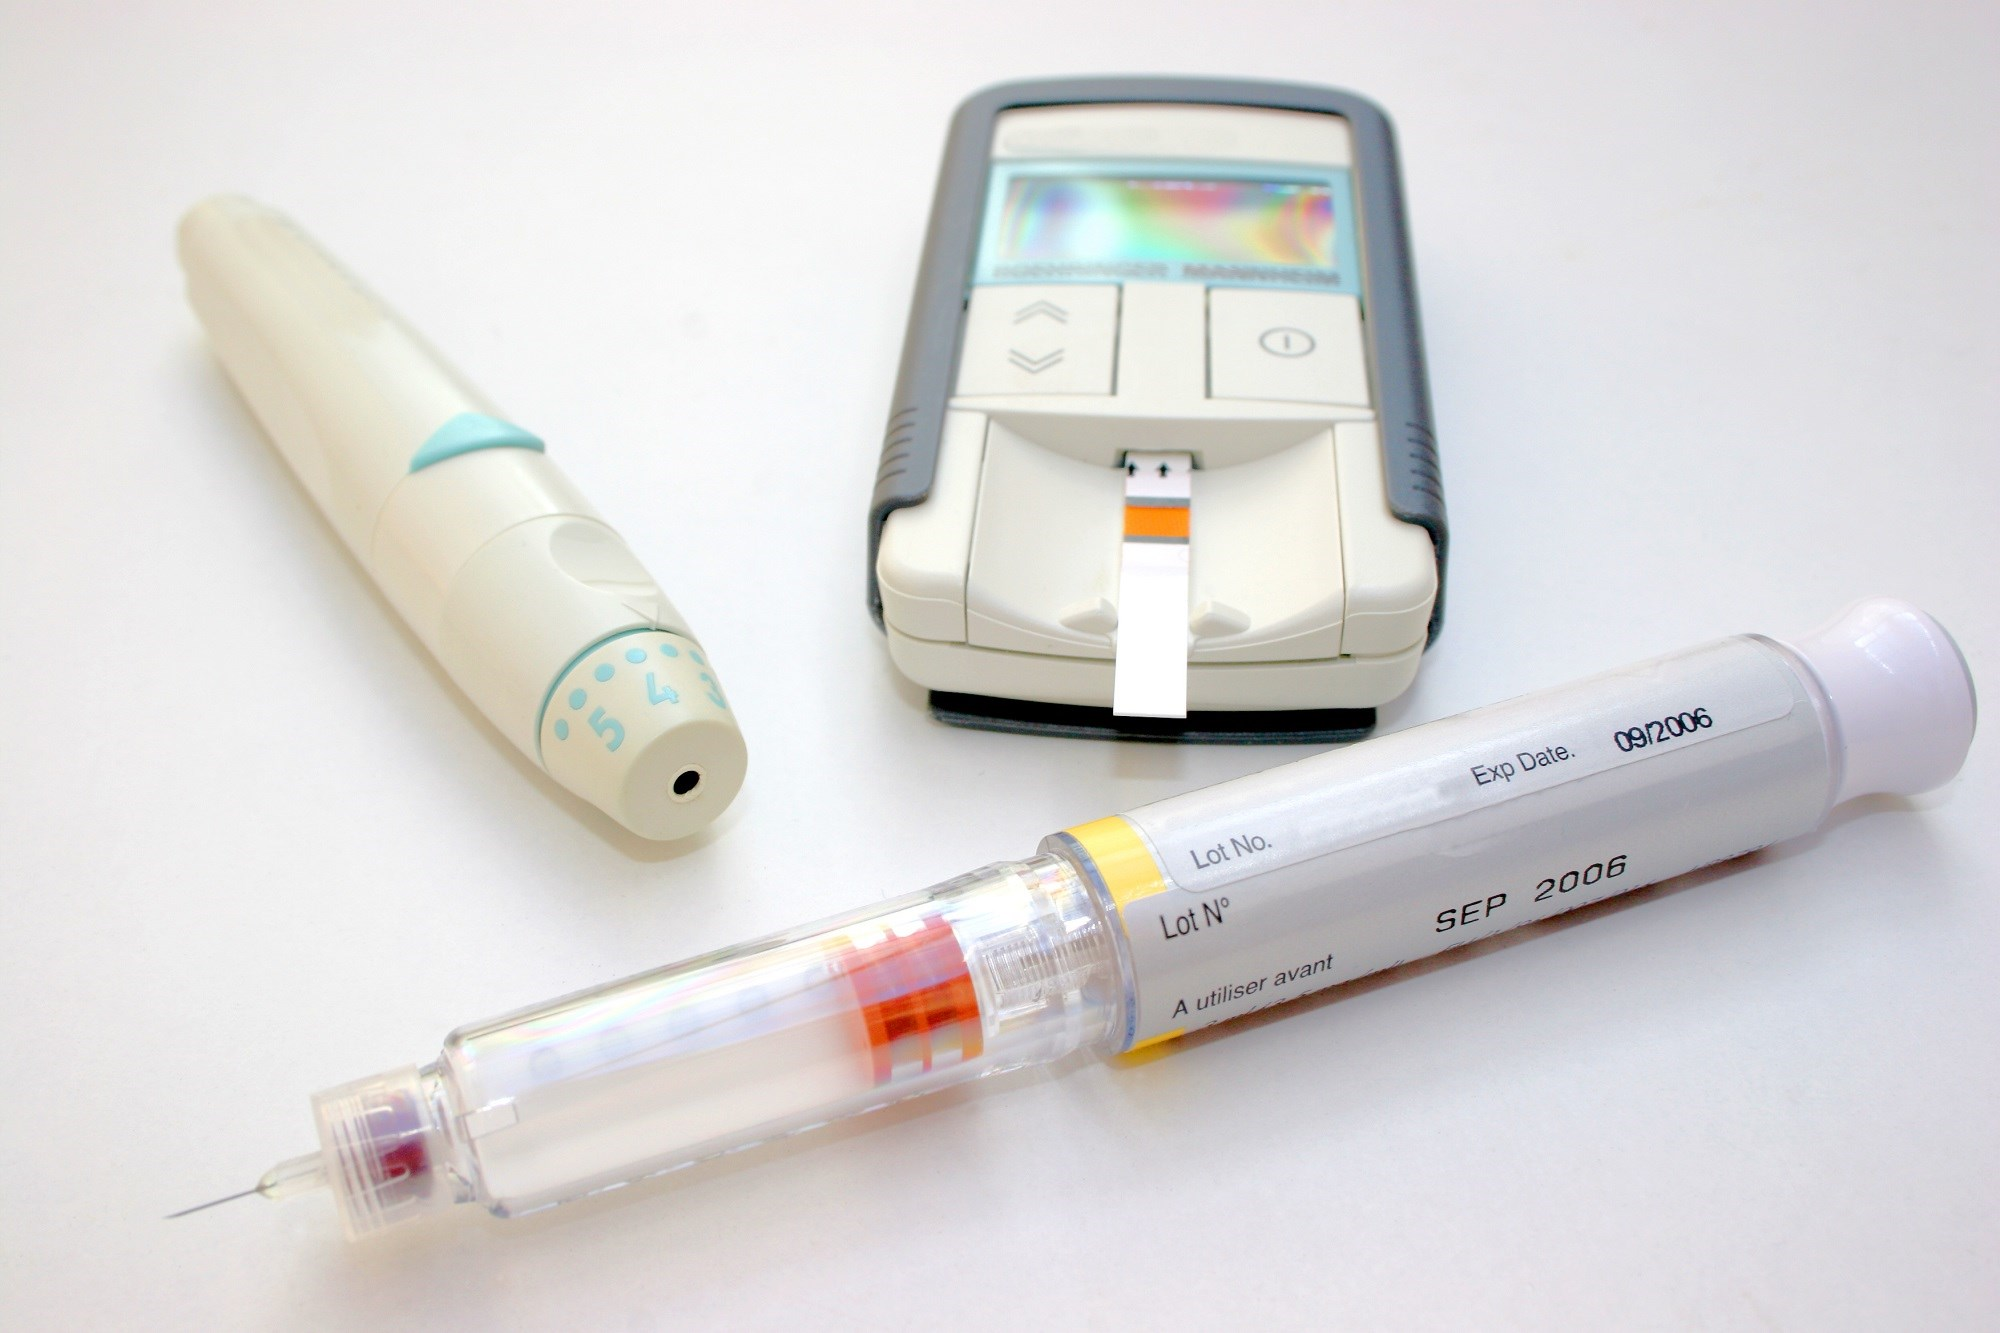 Favorable Outcomes With Second-Generation Insulin Analogs in Type 2 Diabetes